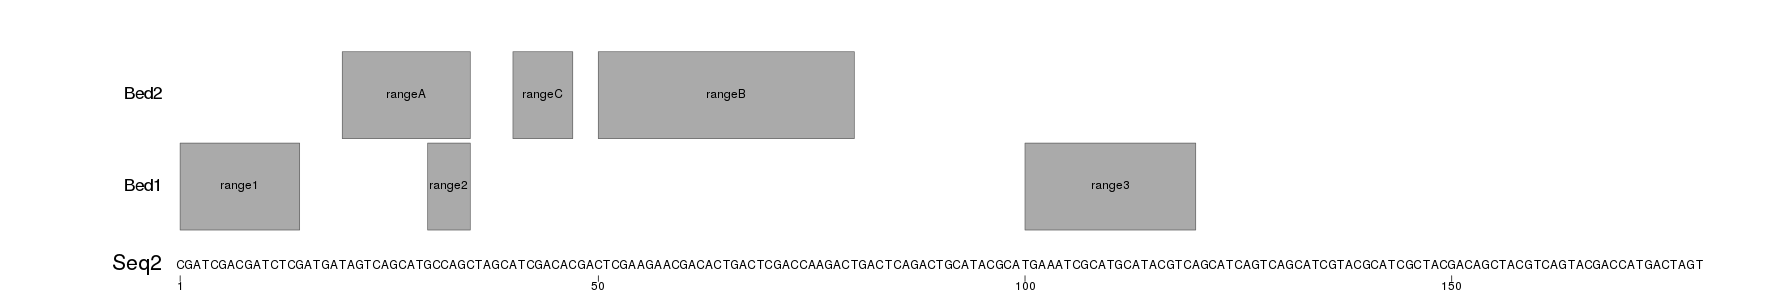 Plot for example sequence Seq2